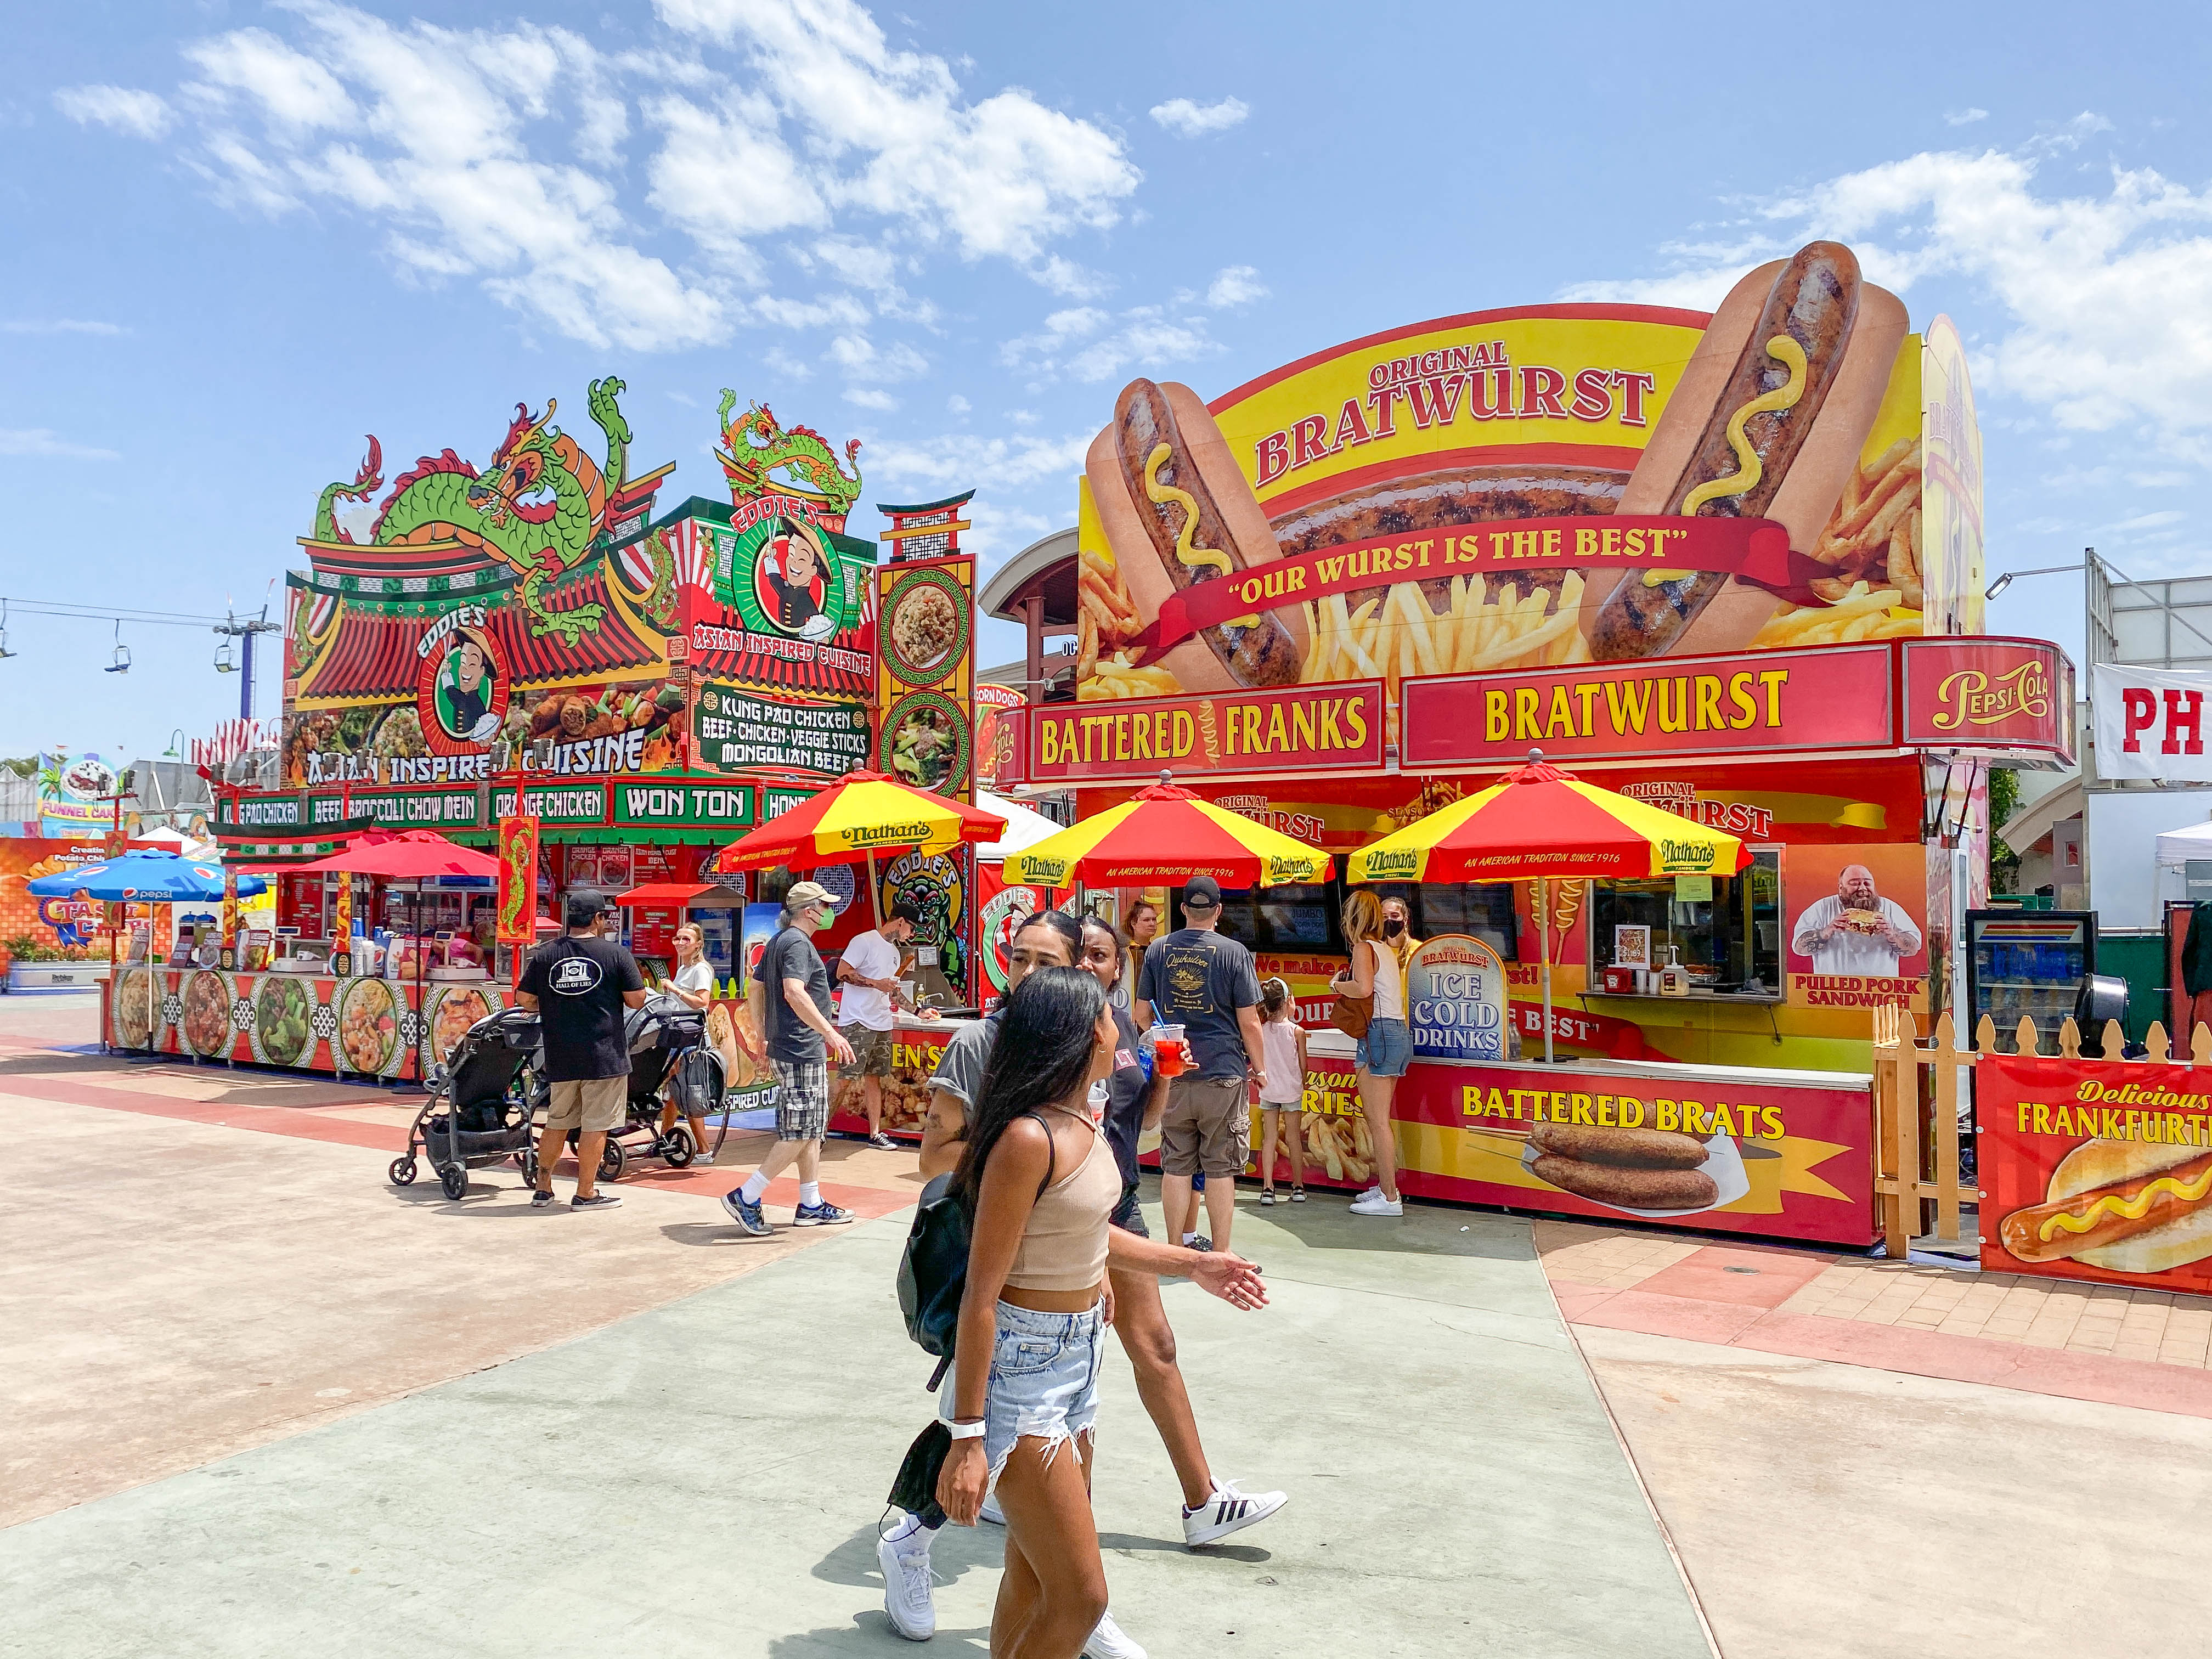 A crowd passes by a bright food stand at an open-air fair.